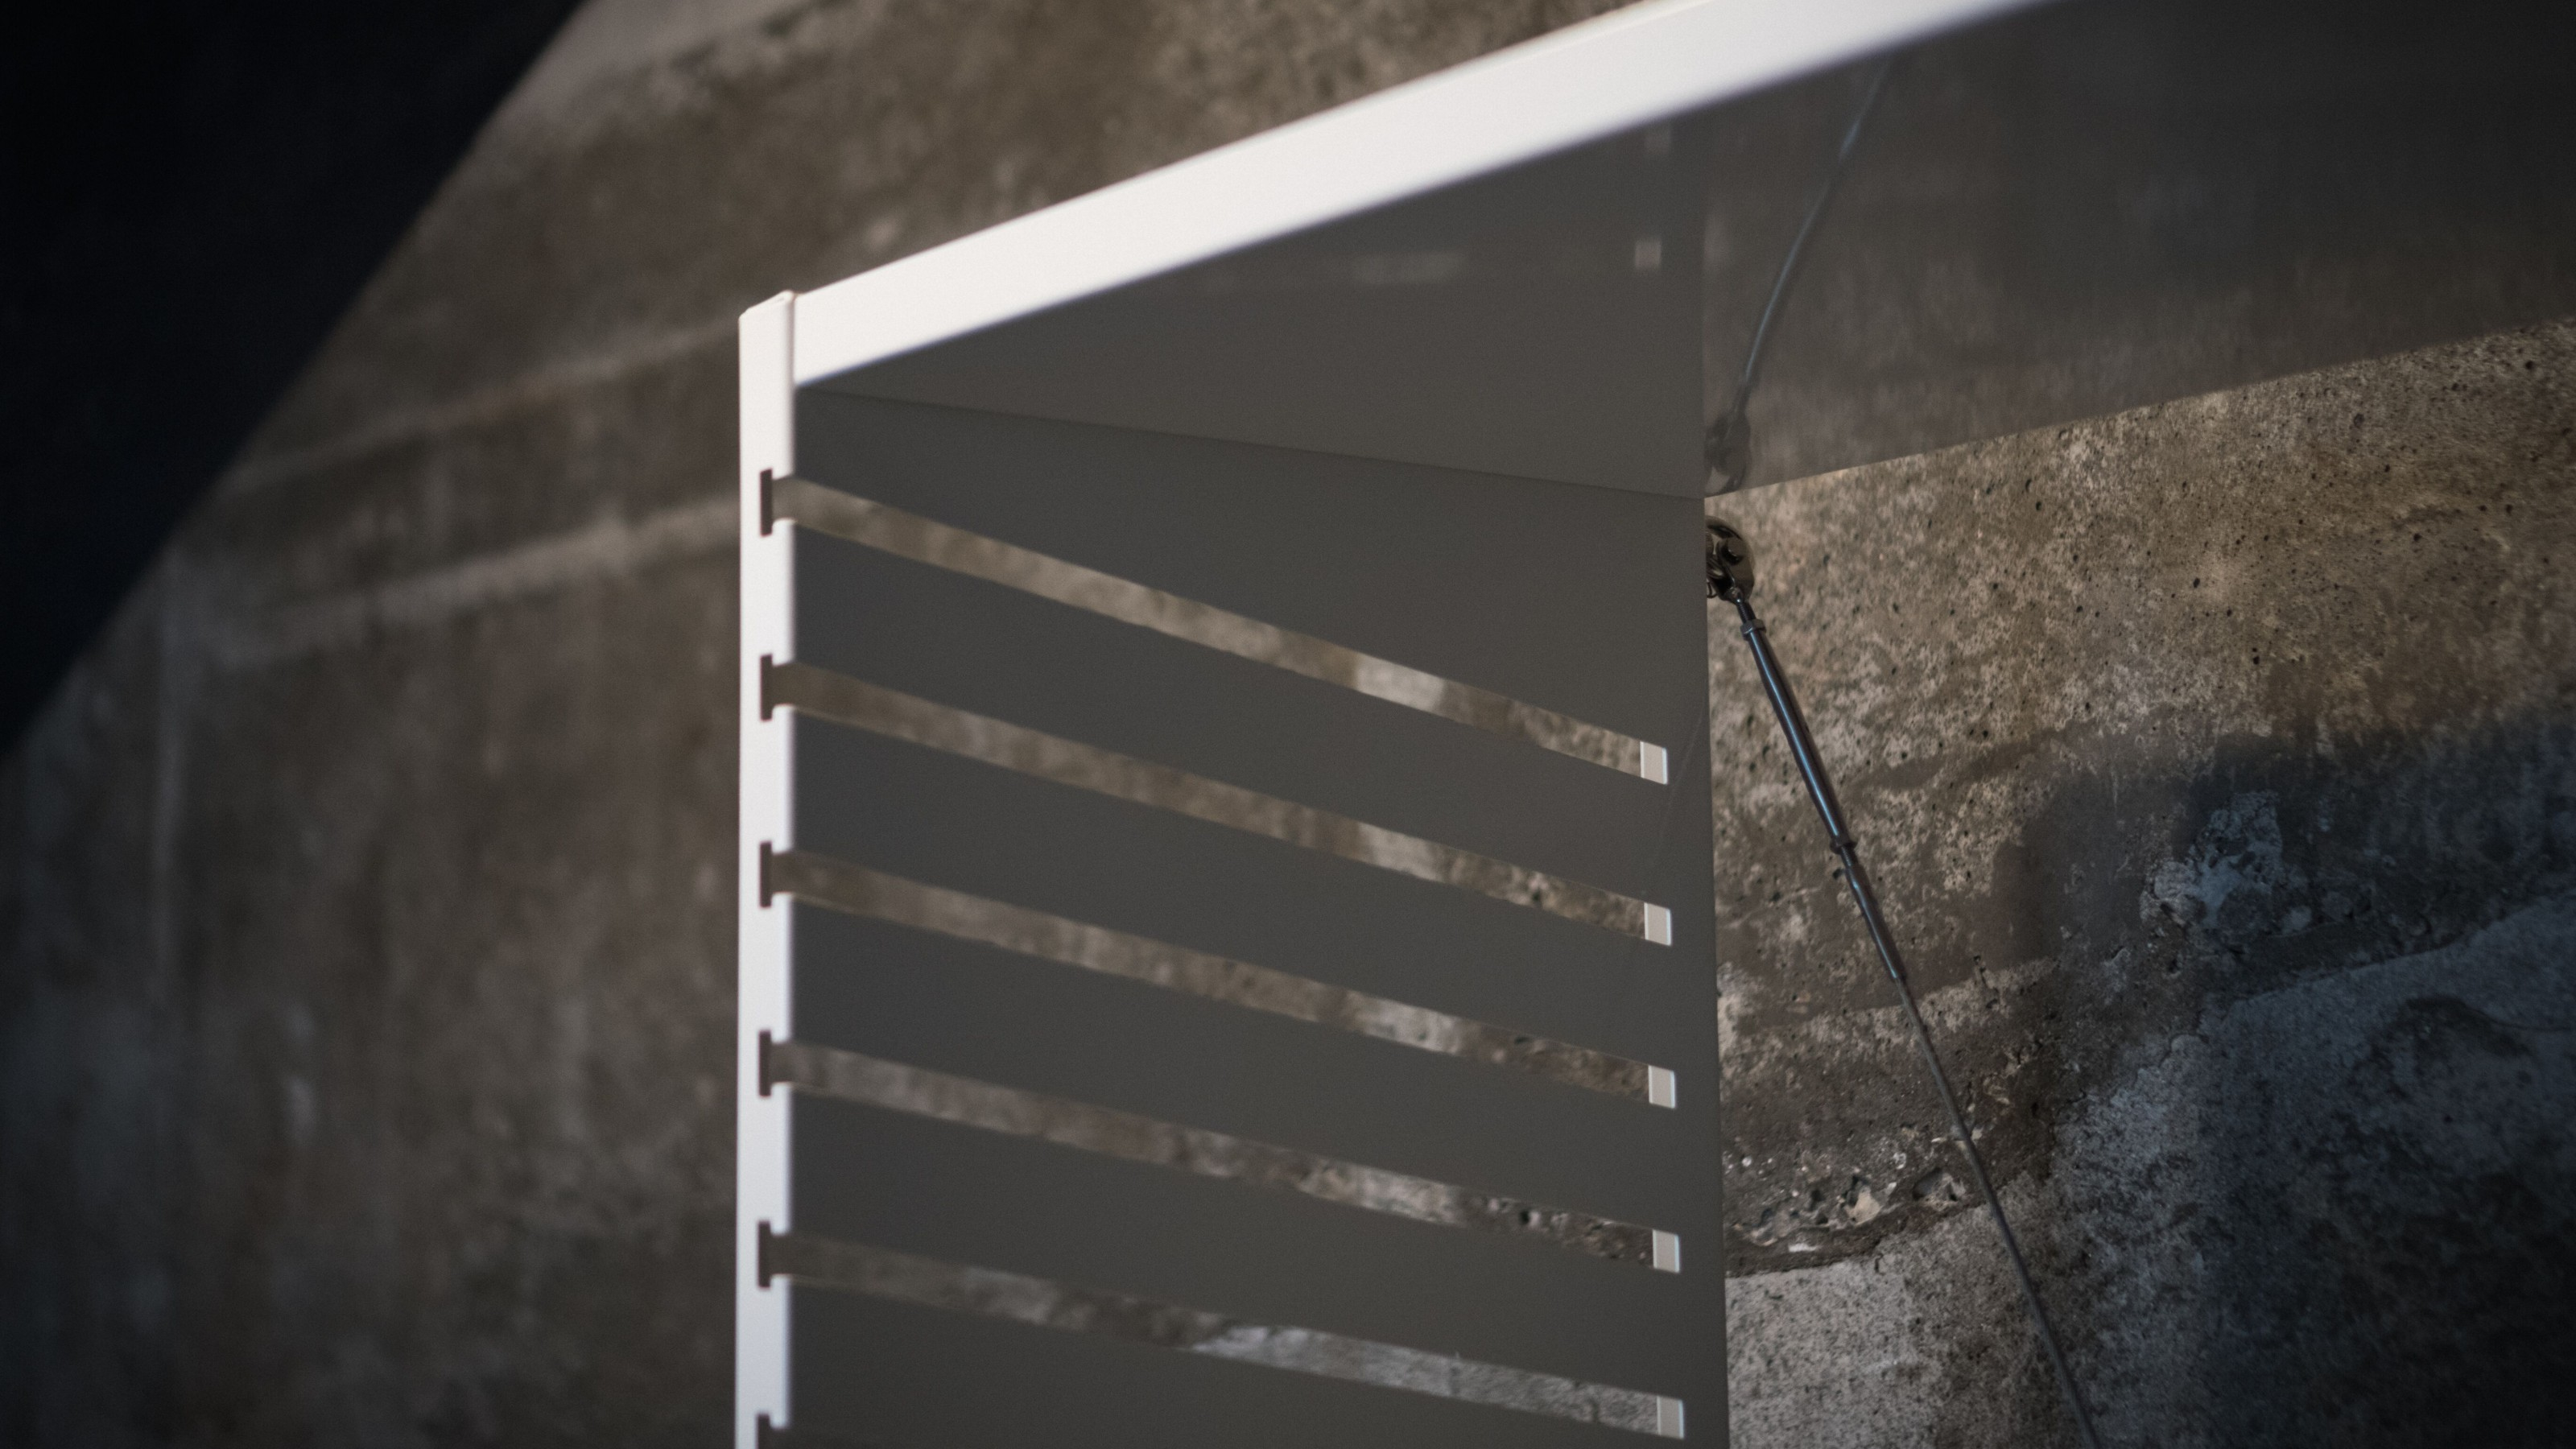 Close up of white shelf unit made of folded sheet of metal with slots to hold shelves